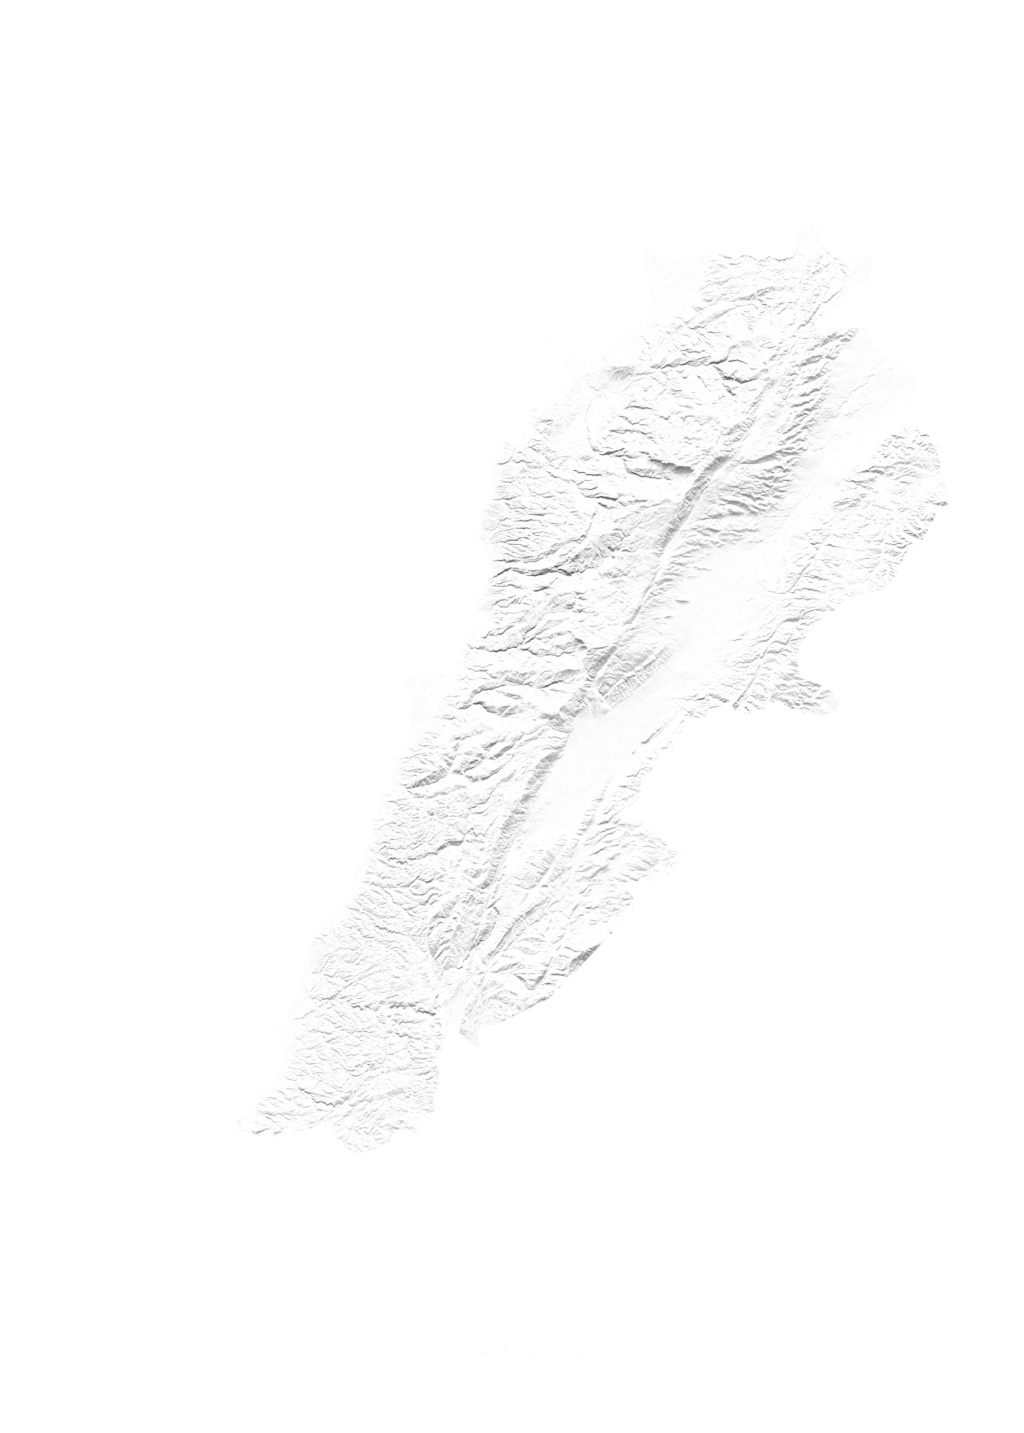 Lebanon wall map